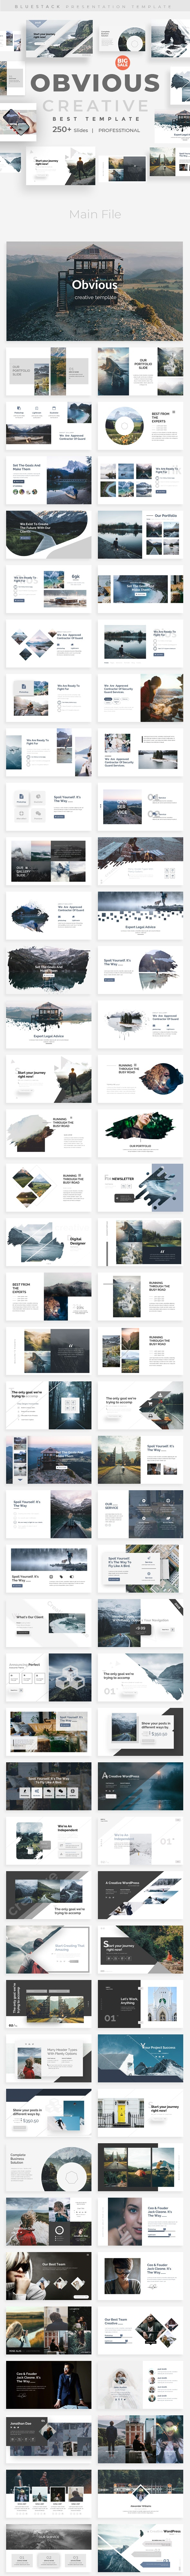 Obvious Creative Powerpoint Template - Creative PowerPoint Templates